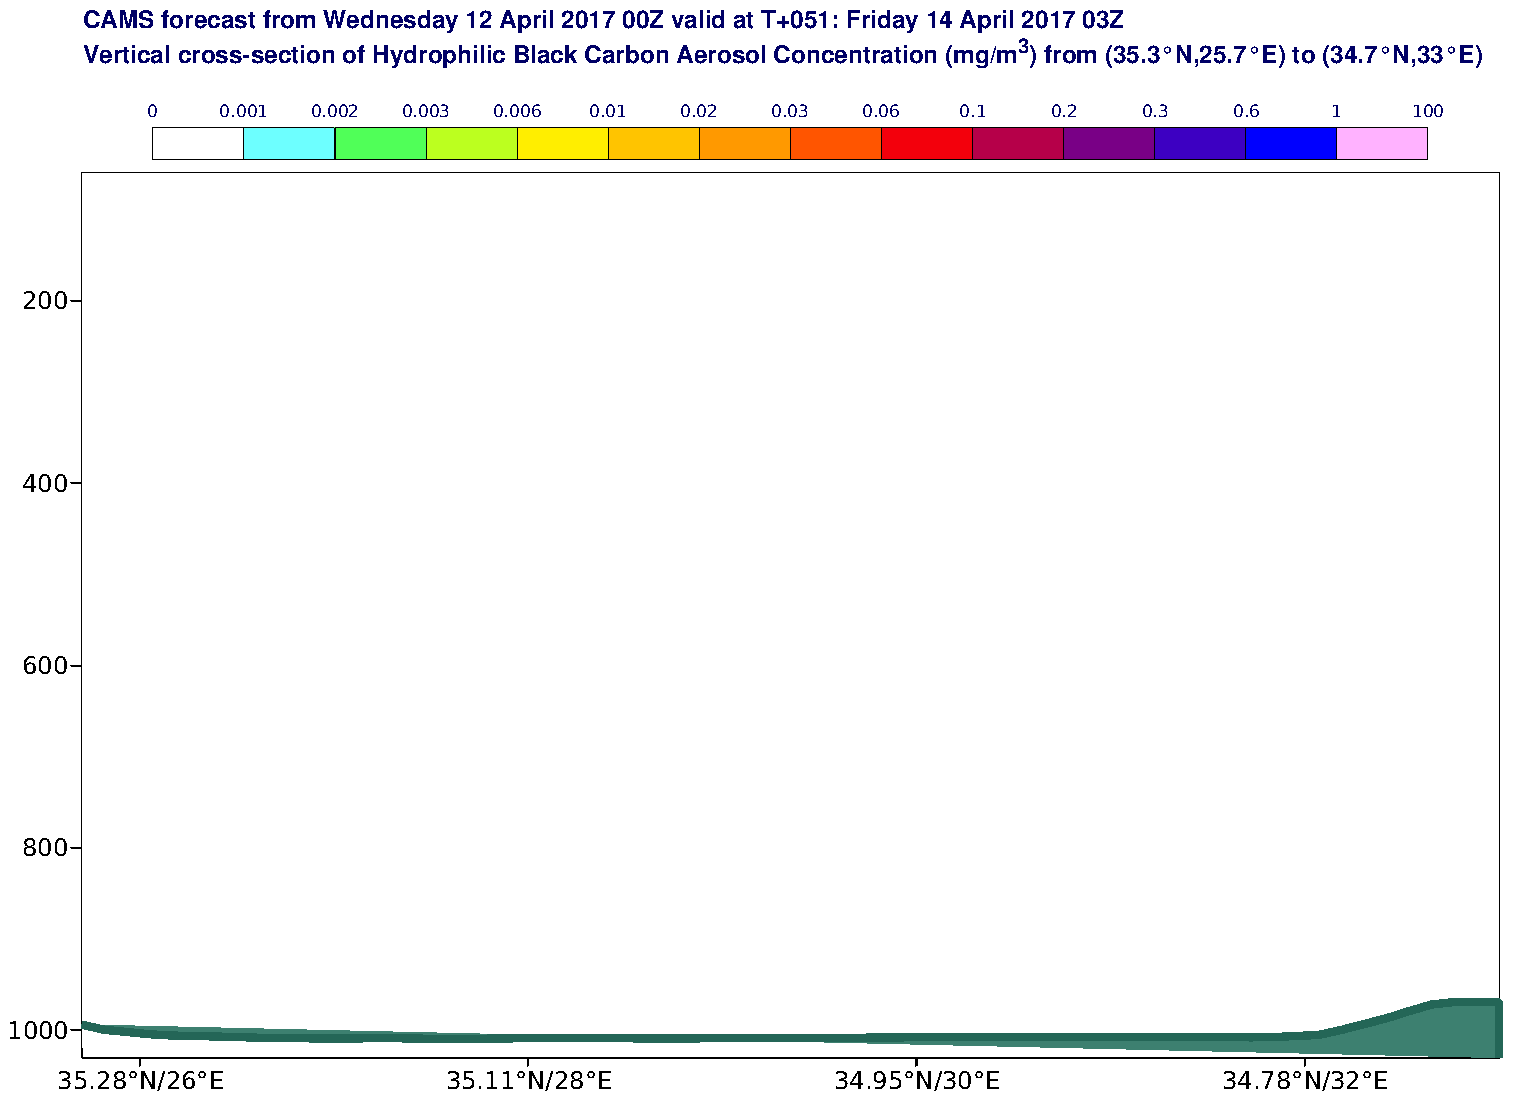 Vertical cross-section of Hydrophilic Black Carbon Aerosol Concentration (mg/m3) valid at T51 - 2017-04-14 03:00